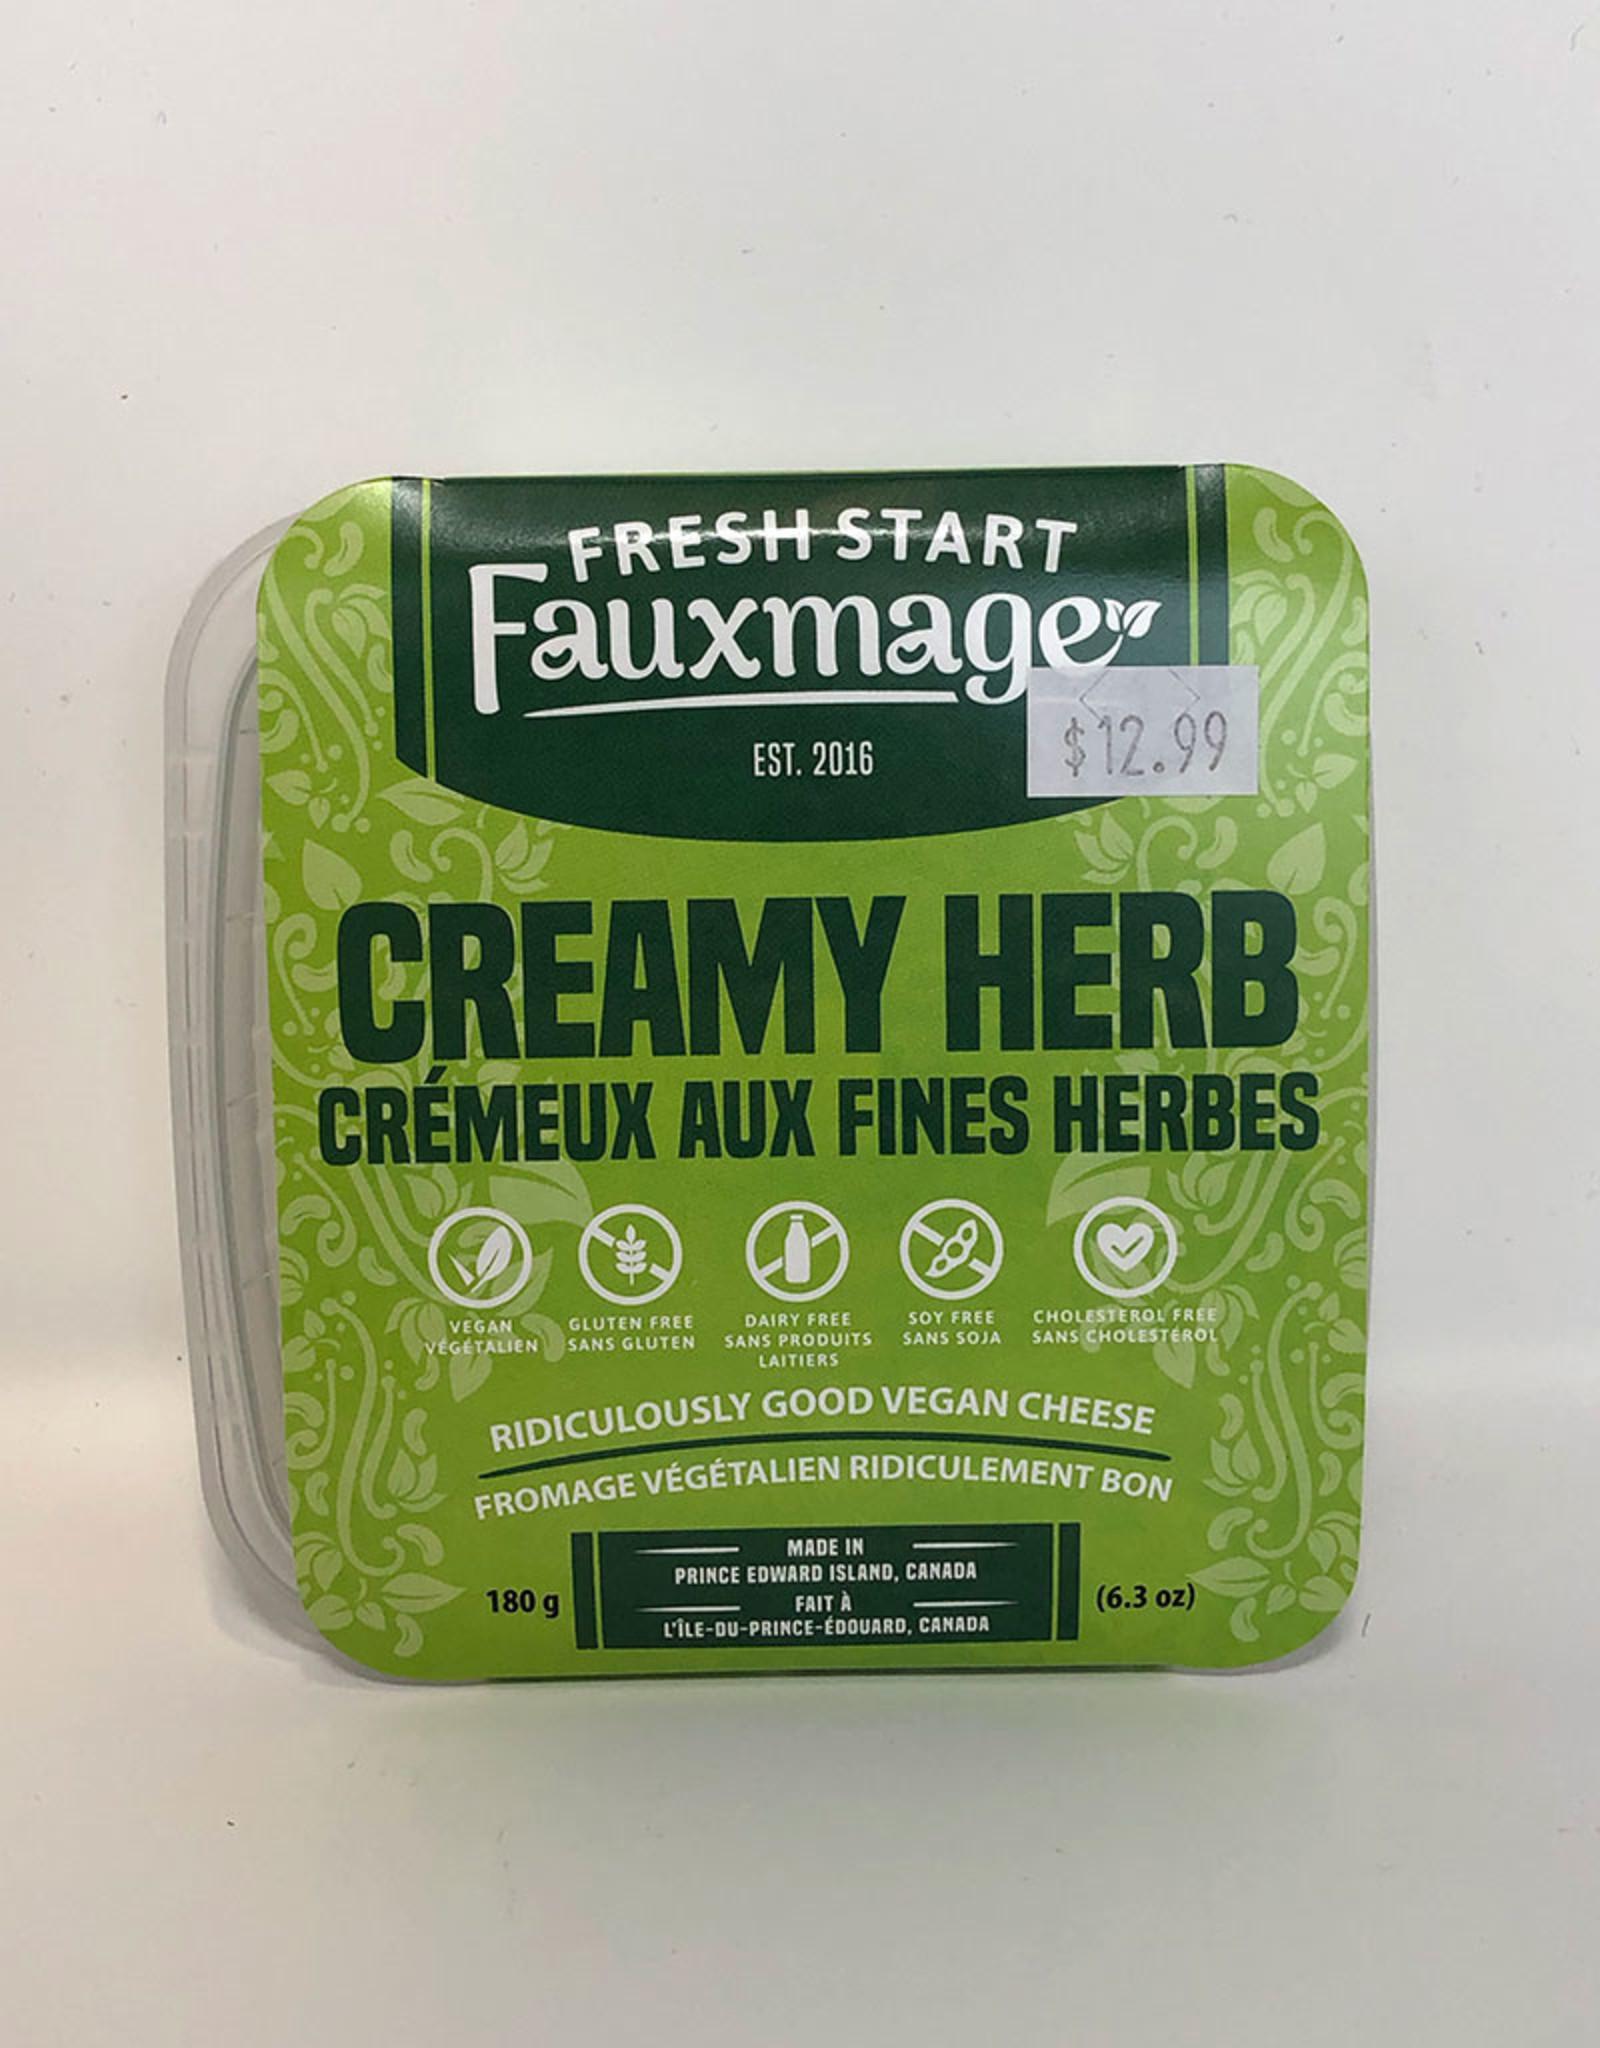 Fresh Start Fauxmage Fresh Start Fauxmage - Creamy Herb (180g)